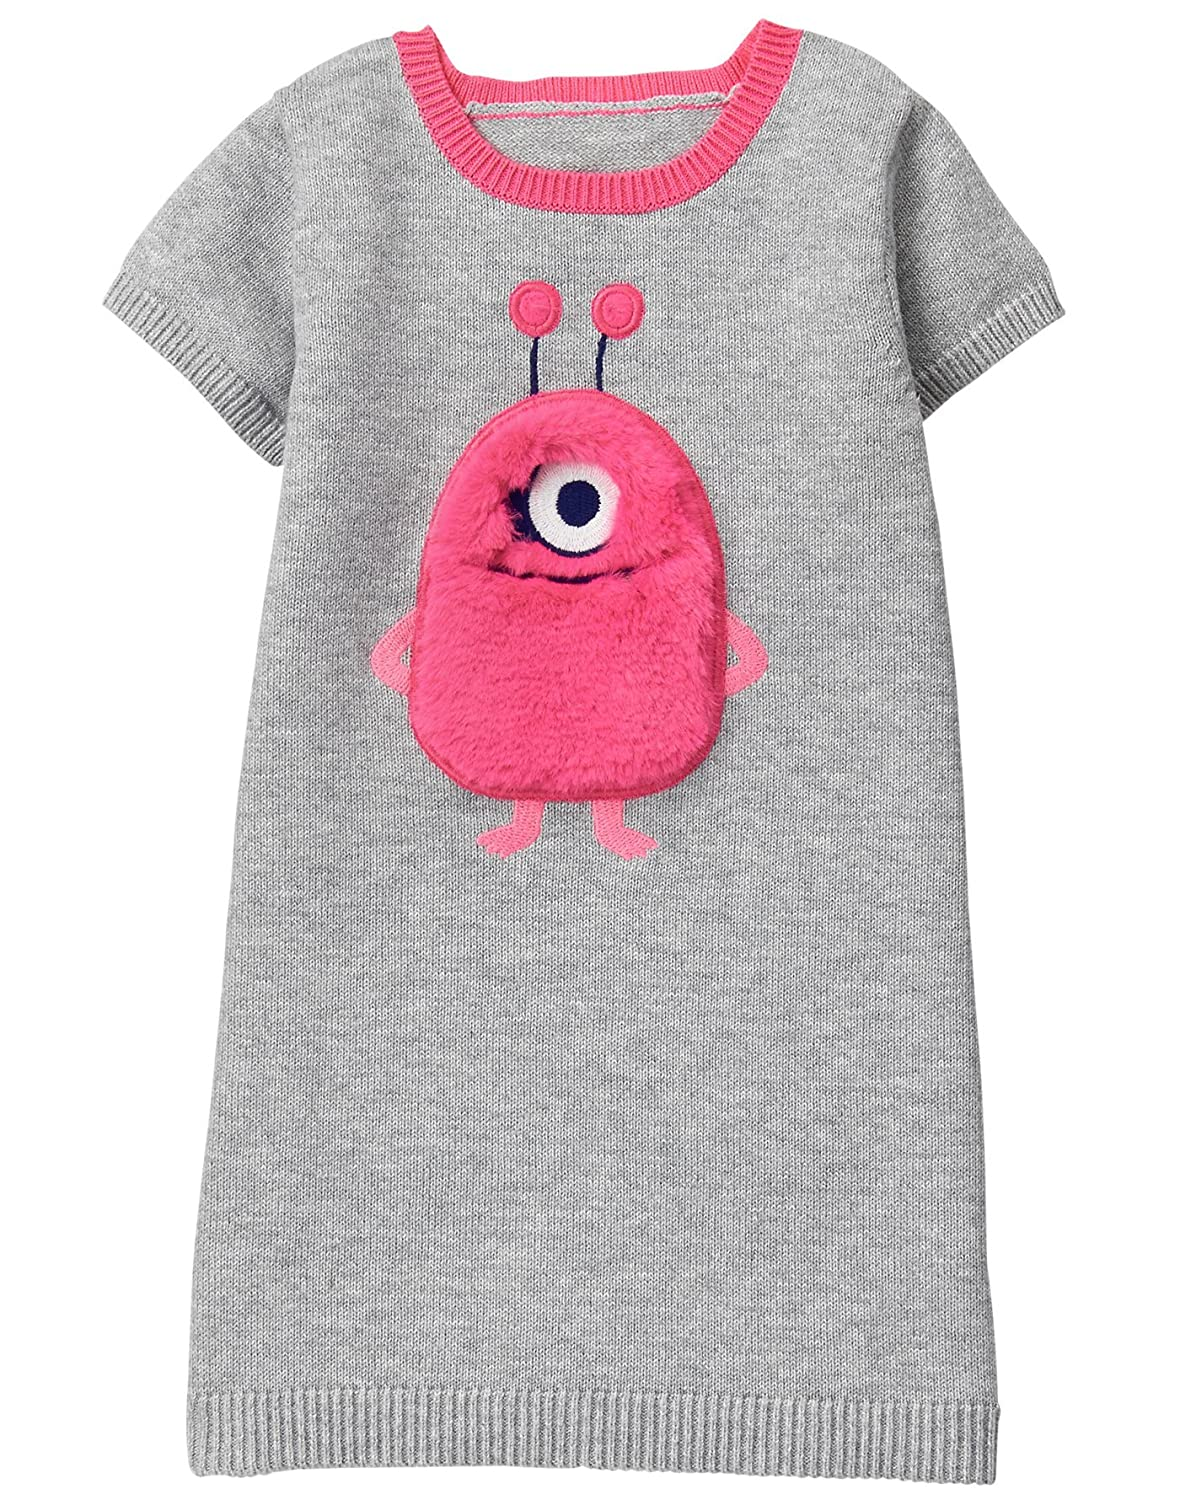 Gymboree Girls Toddler Monster Face Sweater Dress